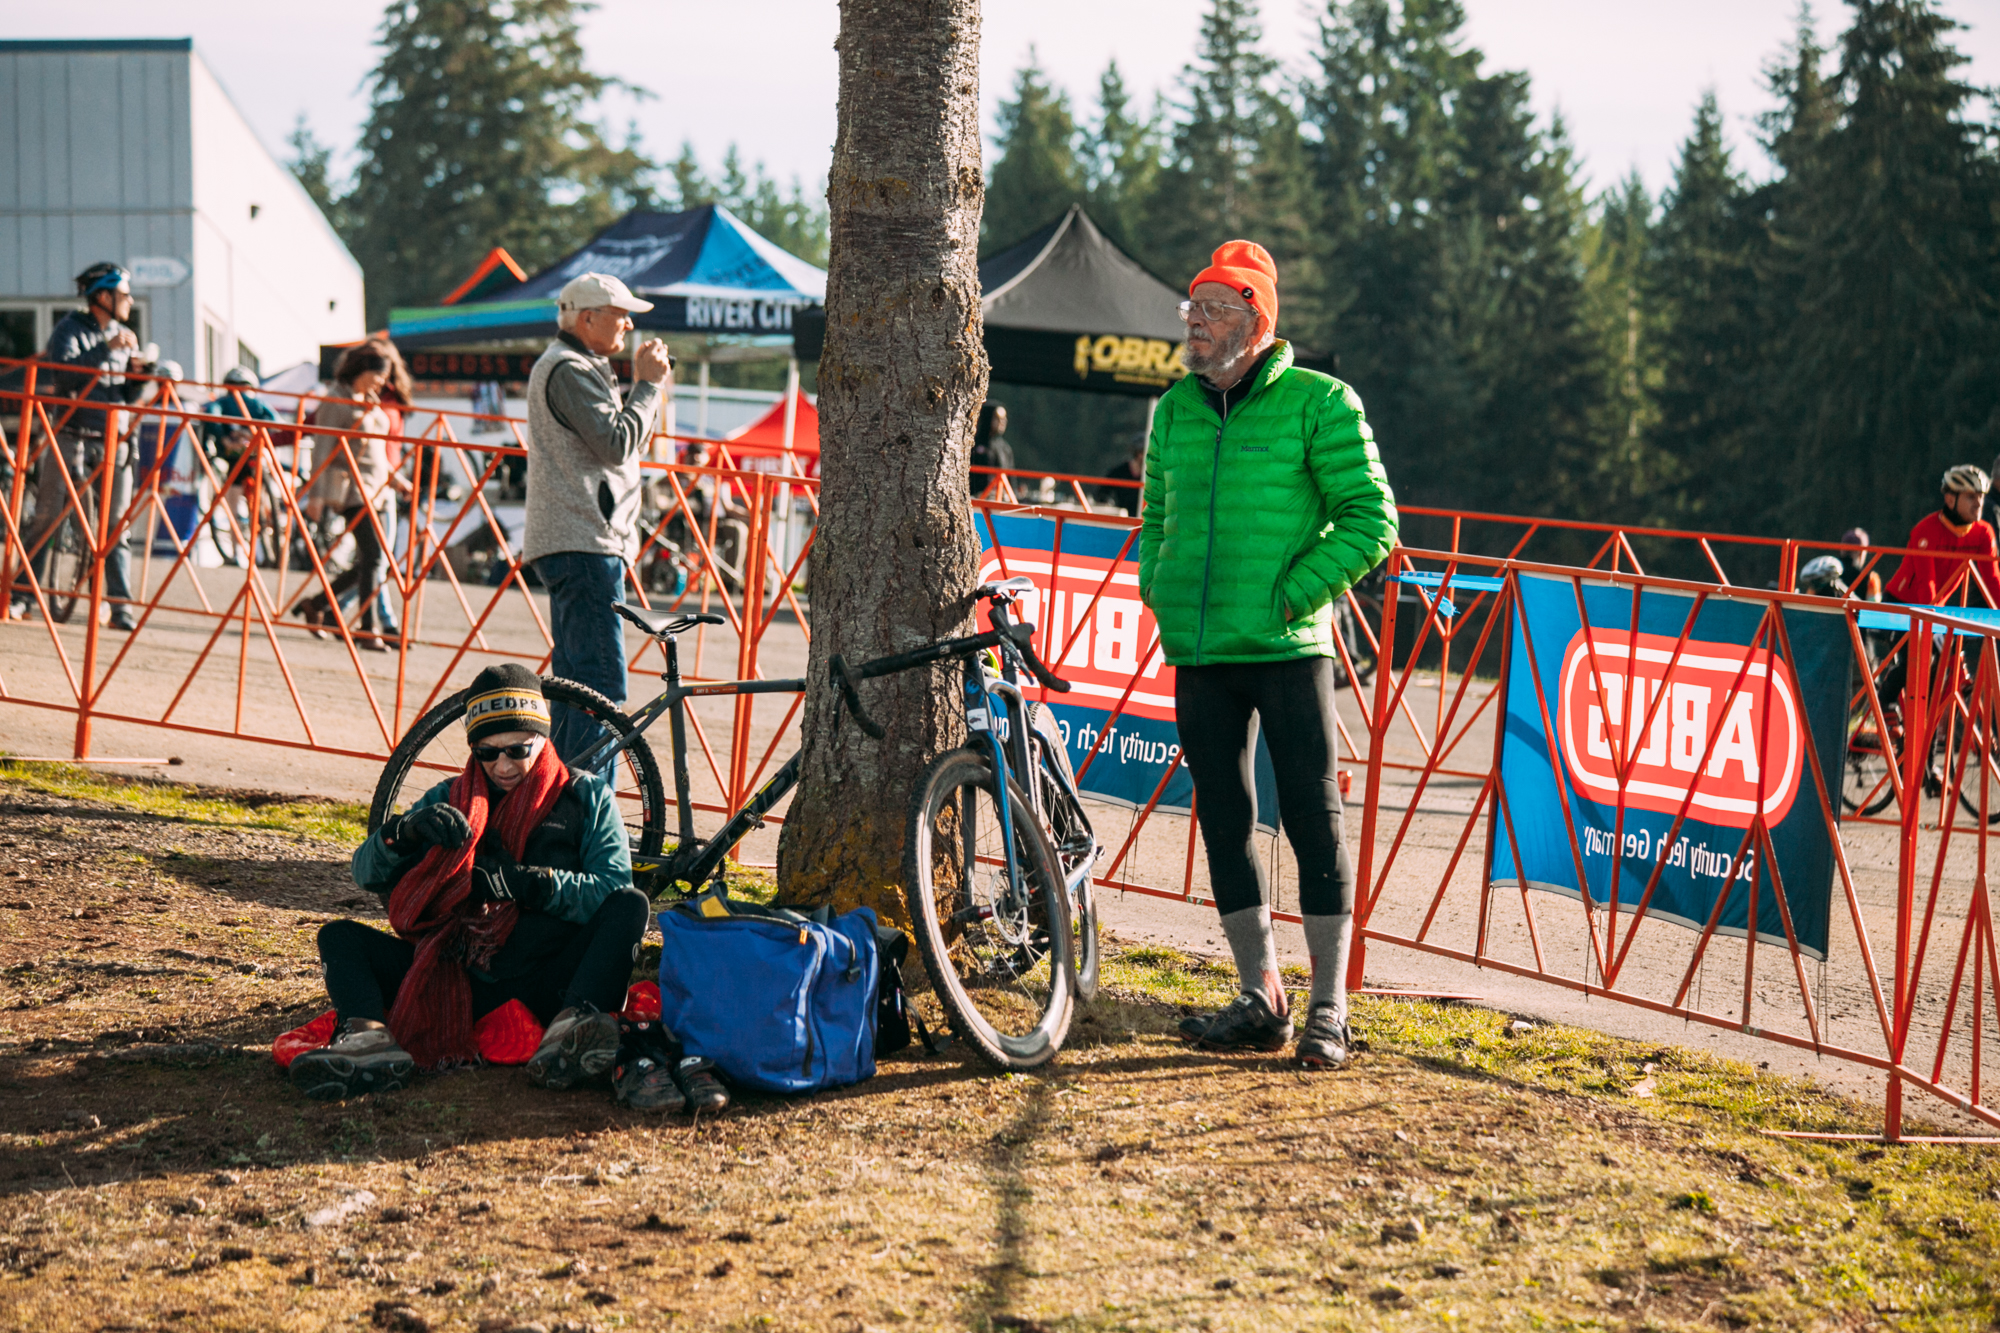 Cyclocross18_CCCX_RainierHS-173-mettlecycling.jpg